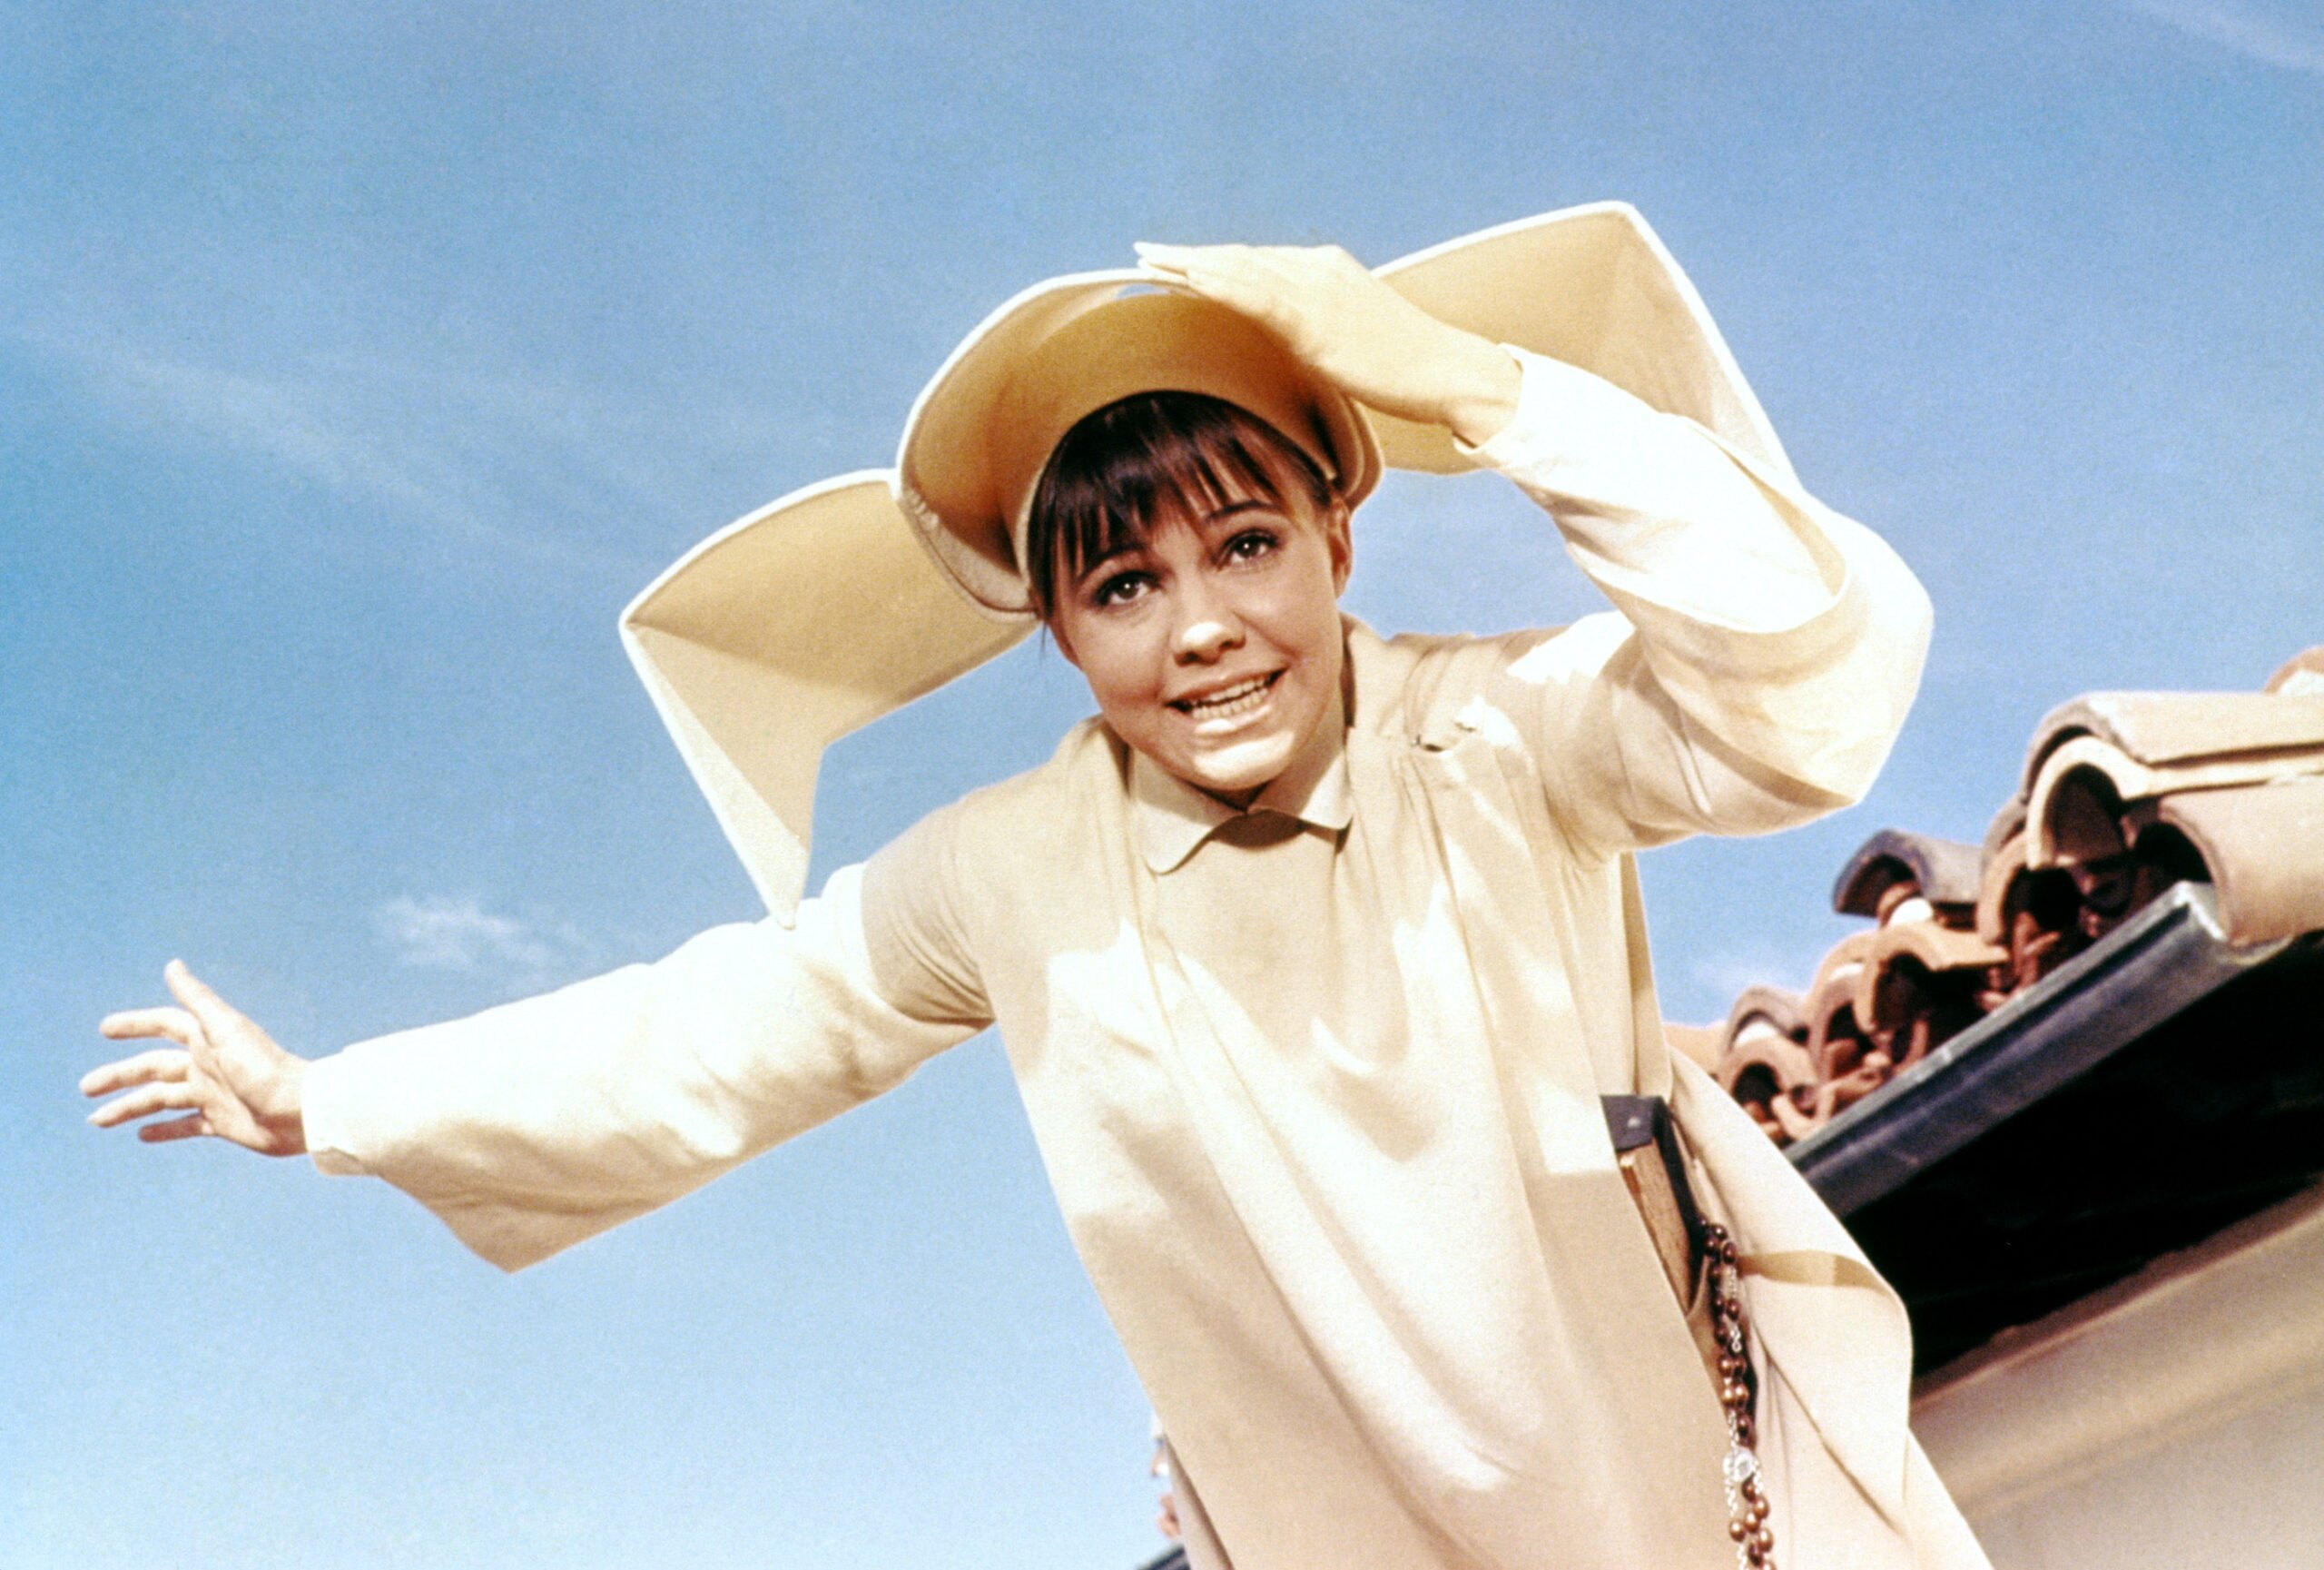 sally field hated the flying nun